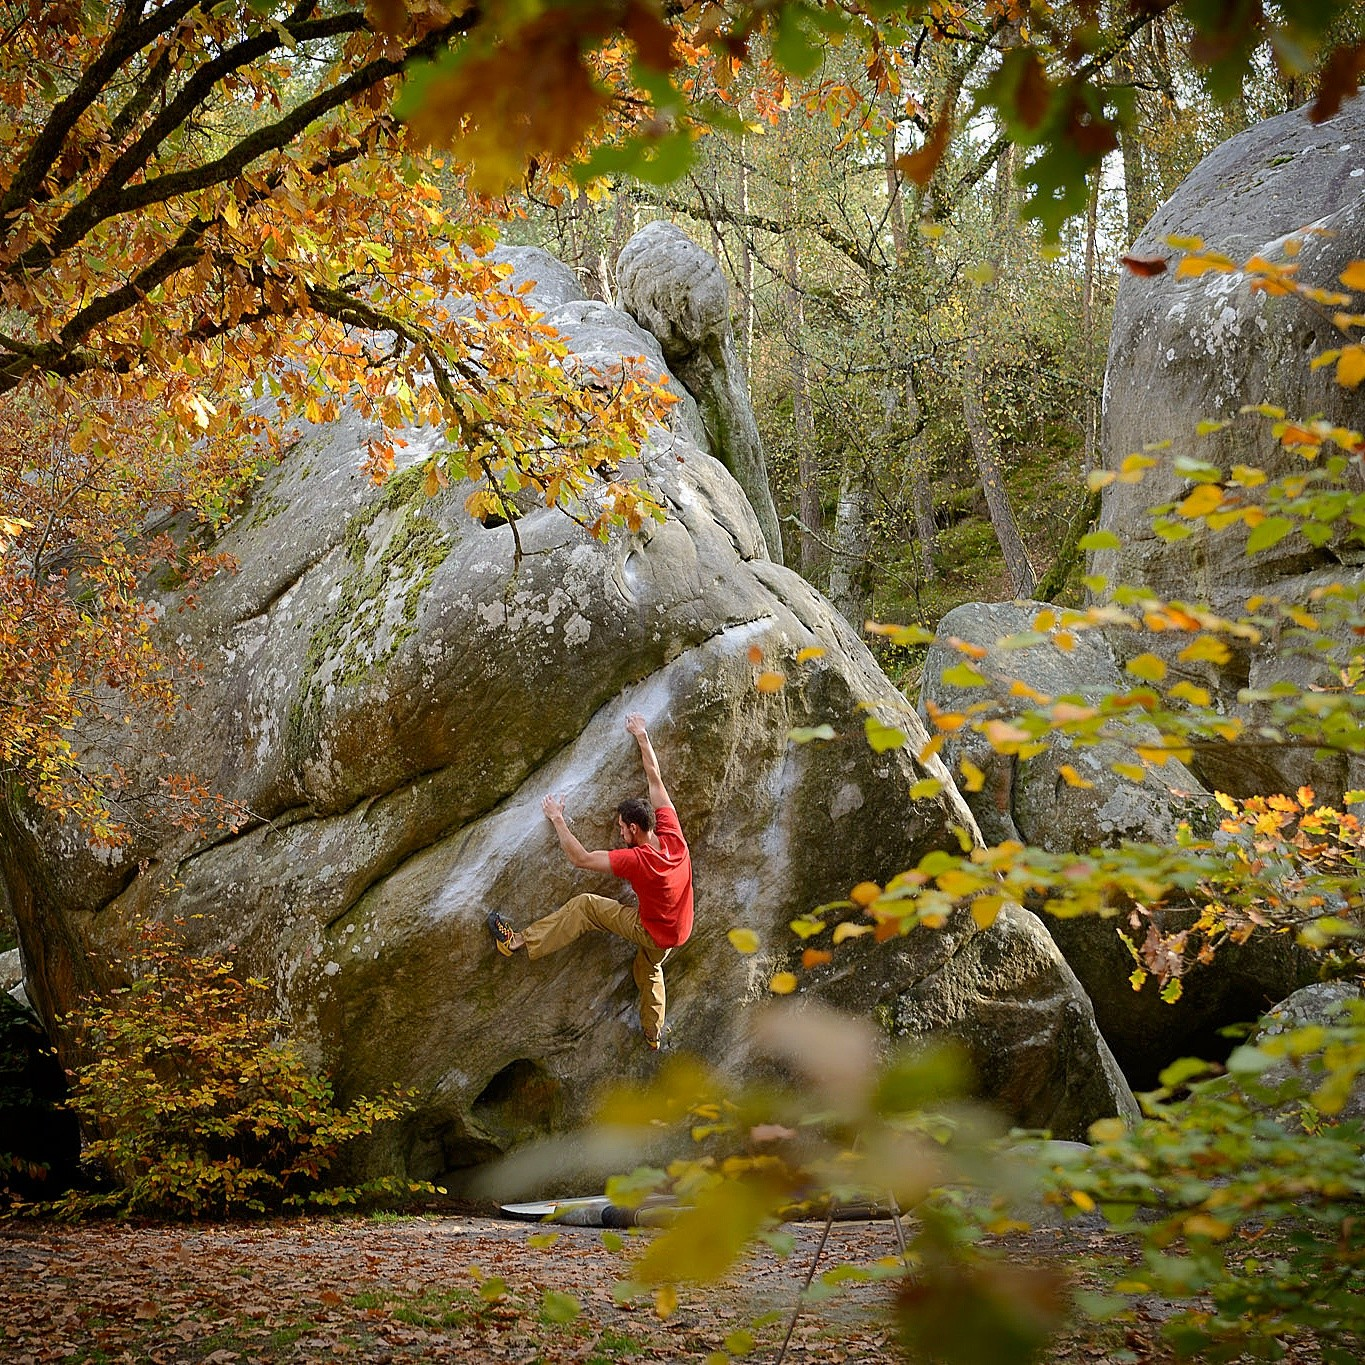 Nick Bradley on La Rampe directe, 7A . Photographer: Rob Lonsdale.